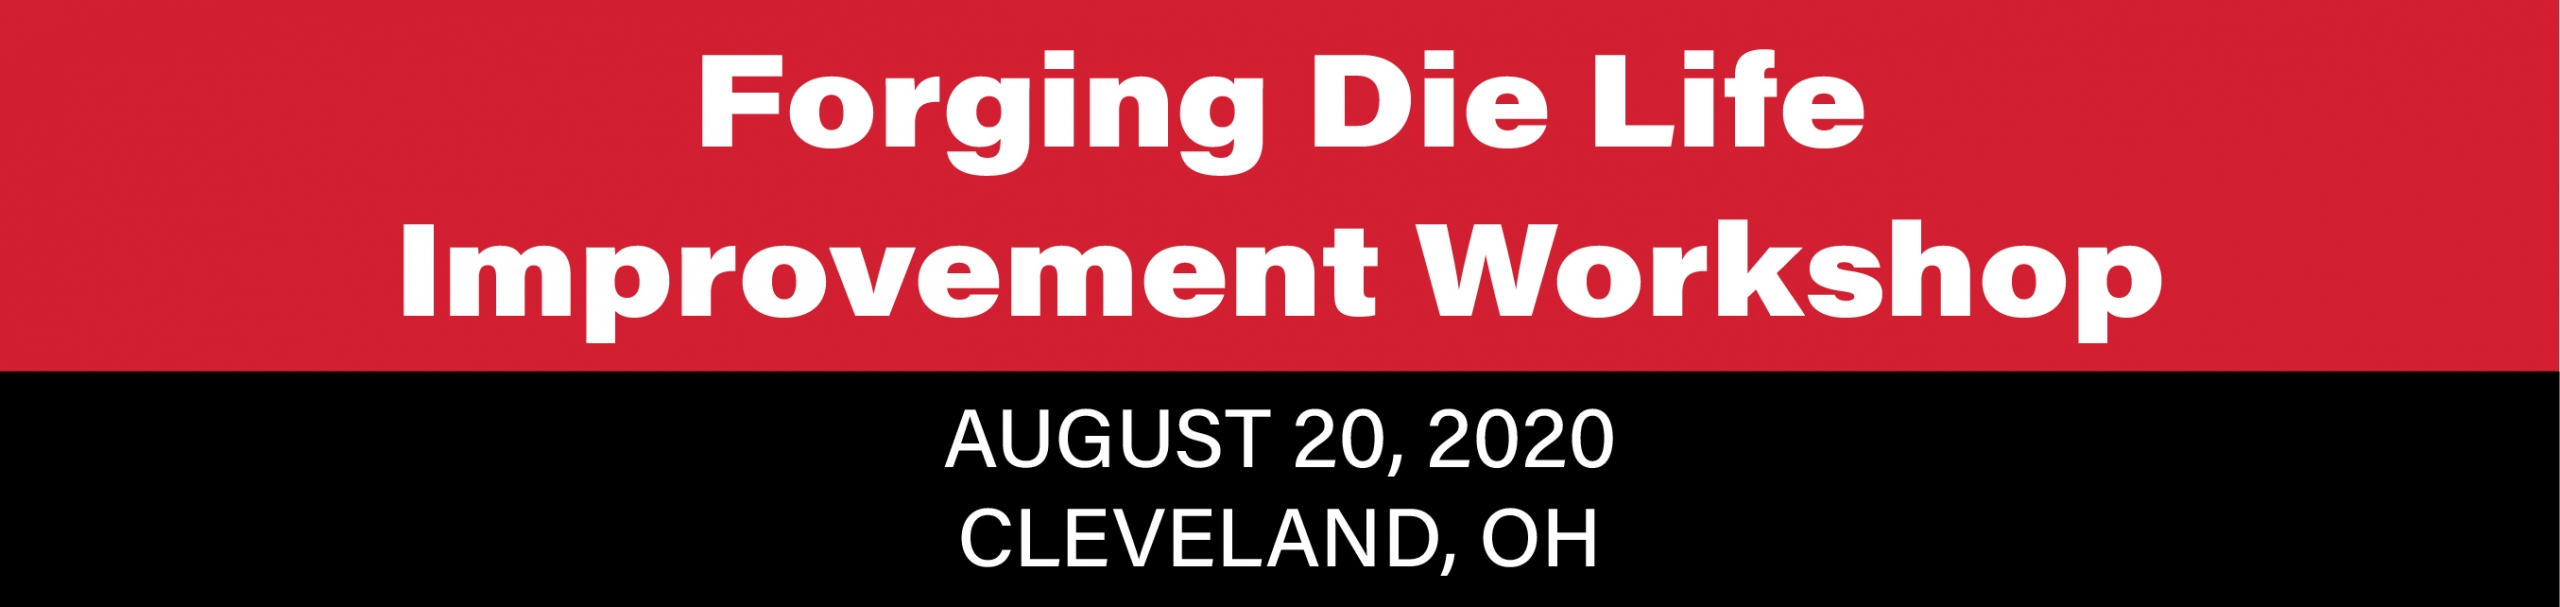 Forging Die Life Improvement Workshop